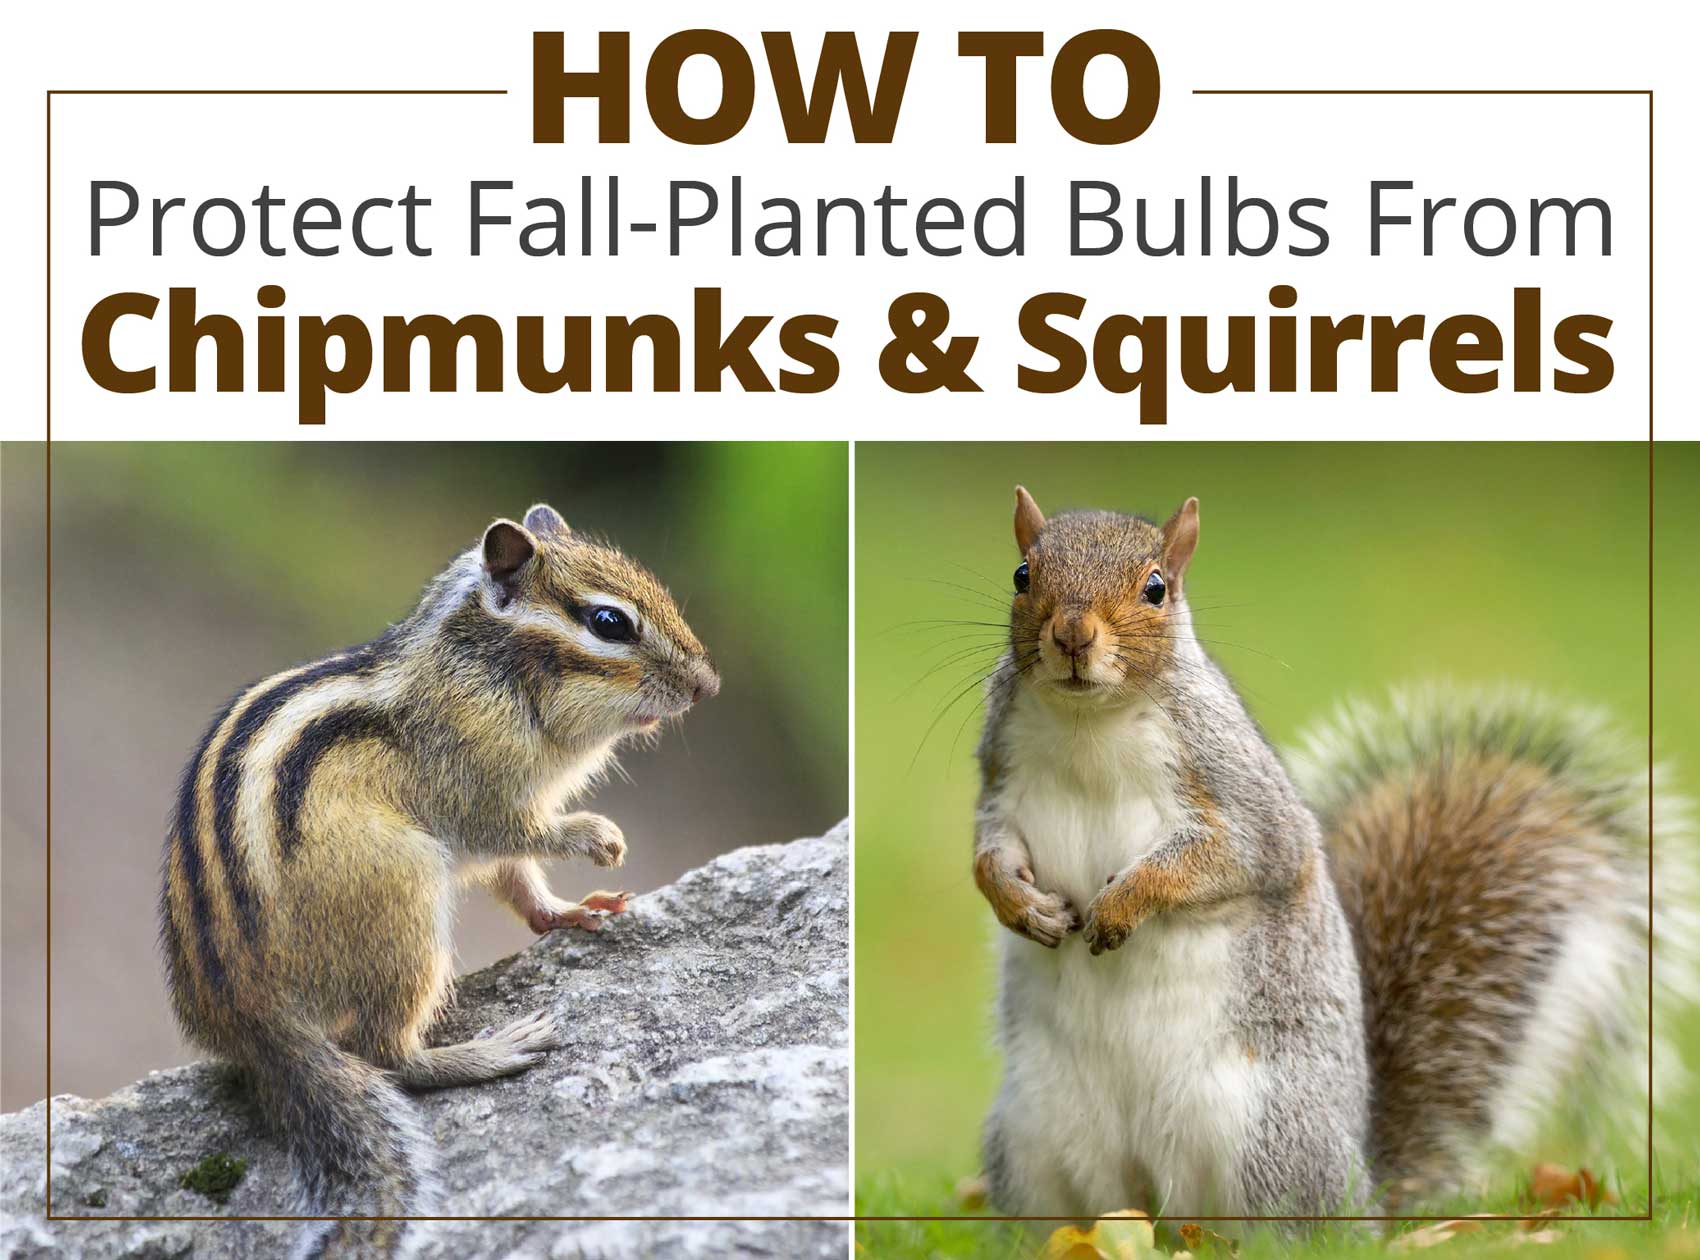 How-To-Proect-Fall-Bulbs-From-Chipmunks-and-Squirrels 1 - Longfield-Gardens.jpg